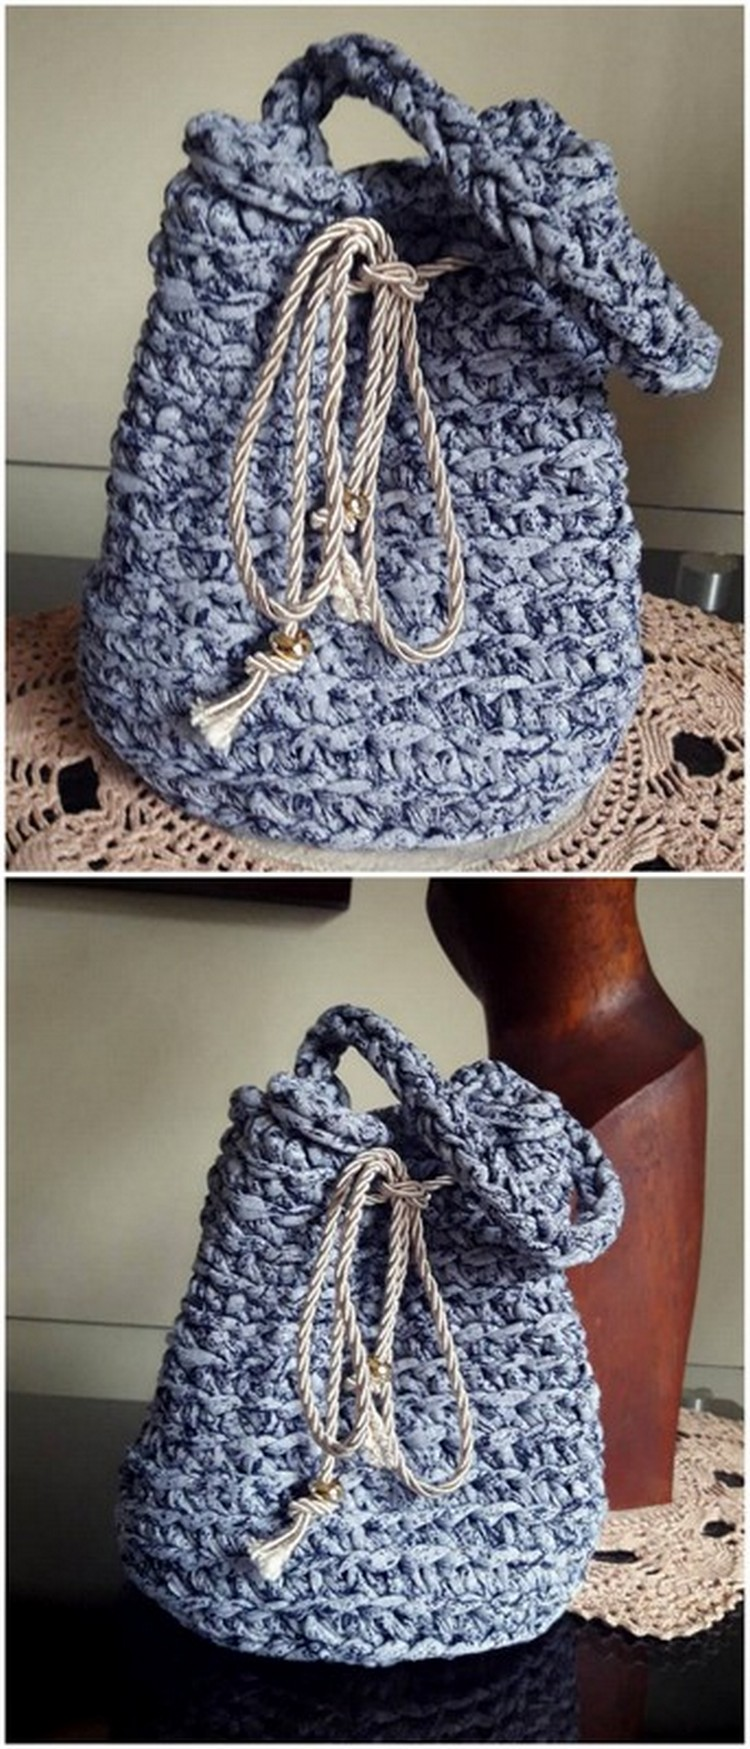 Crochet Sack Pack Free Crochet Pattern